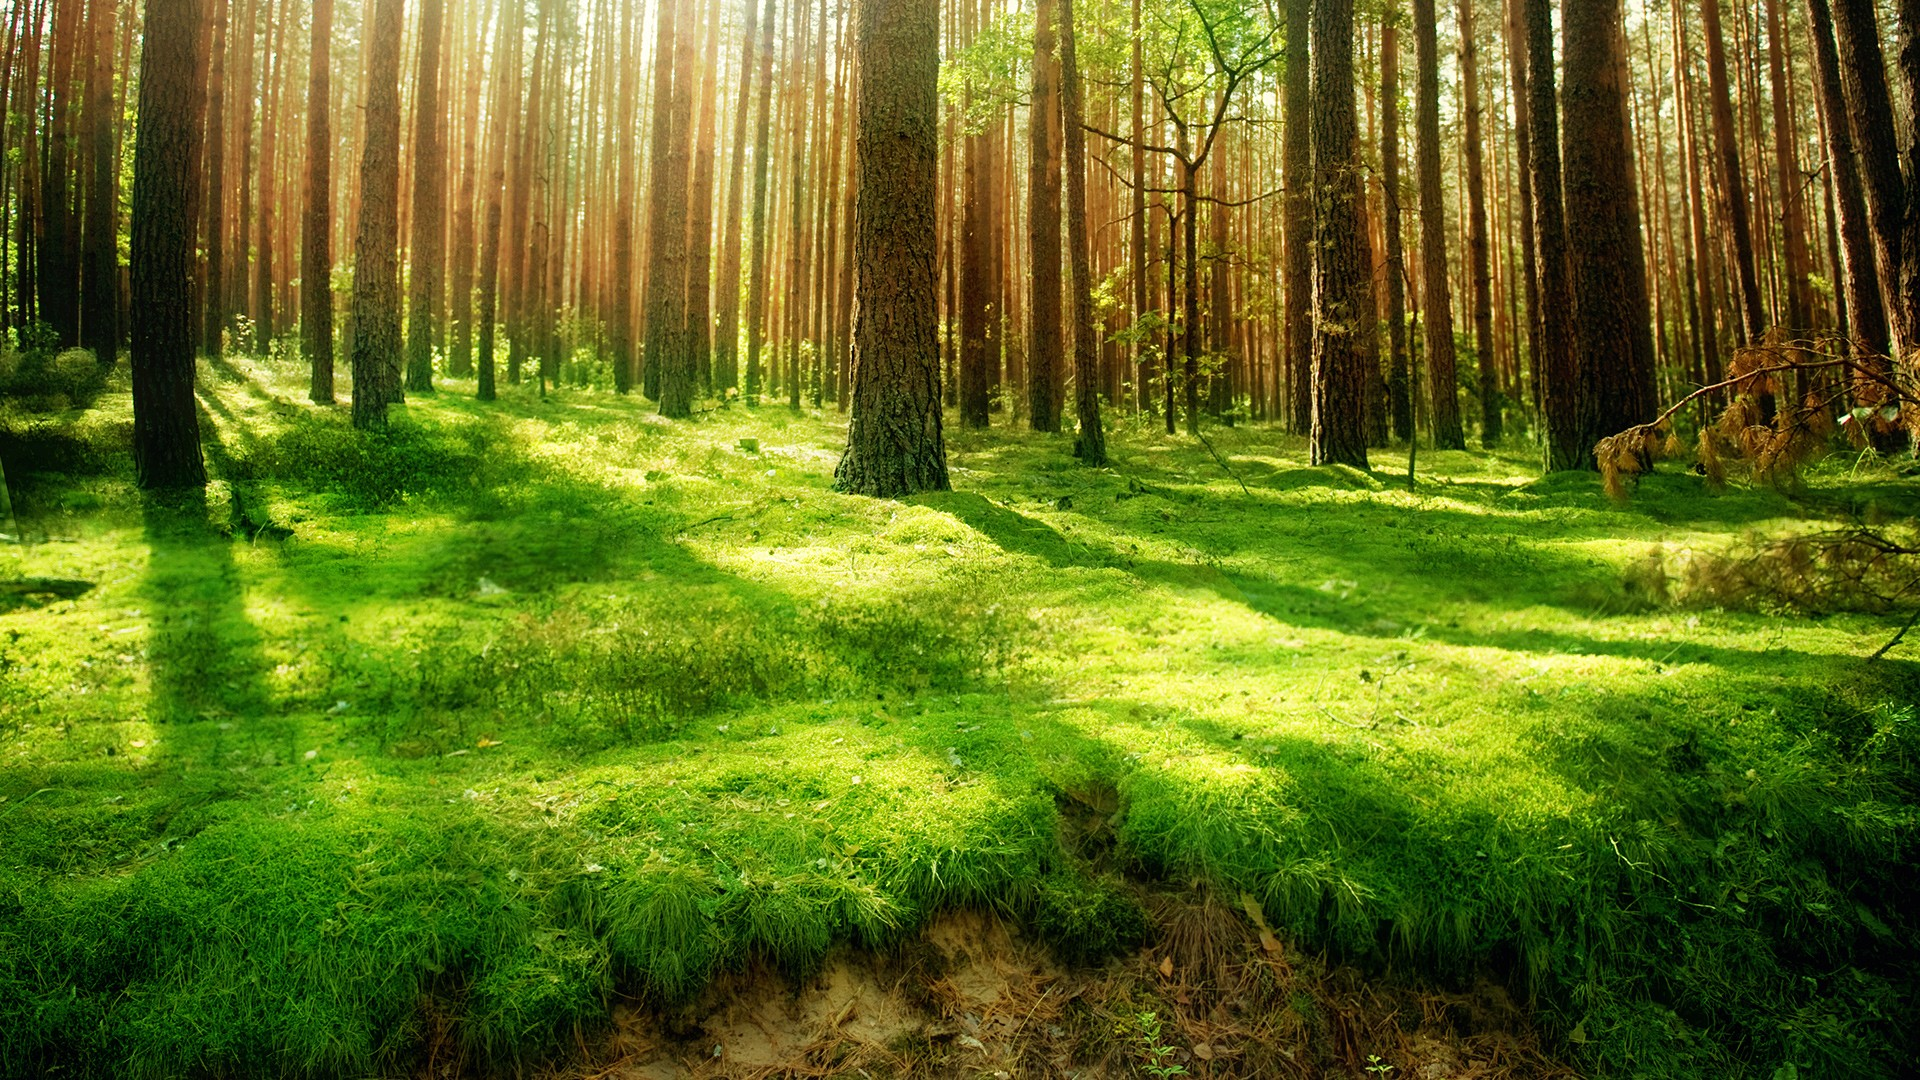 Beautiful Forest Green Wallpaper HD 510 Wallpaper High Resolution 1920x1080